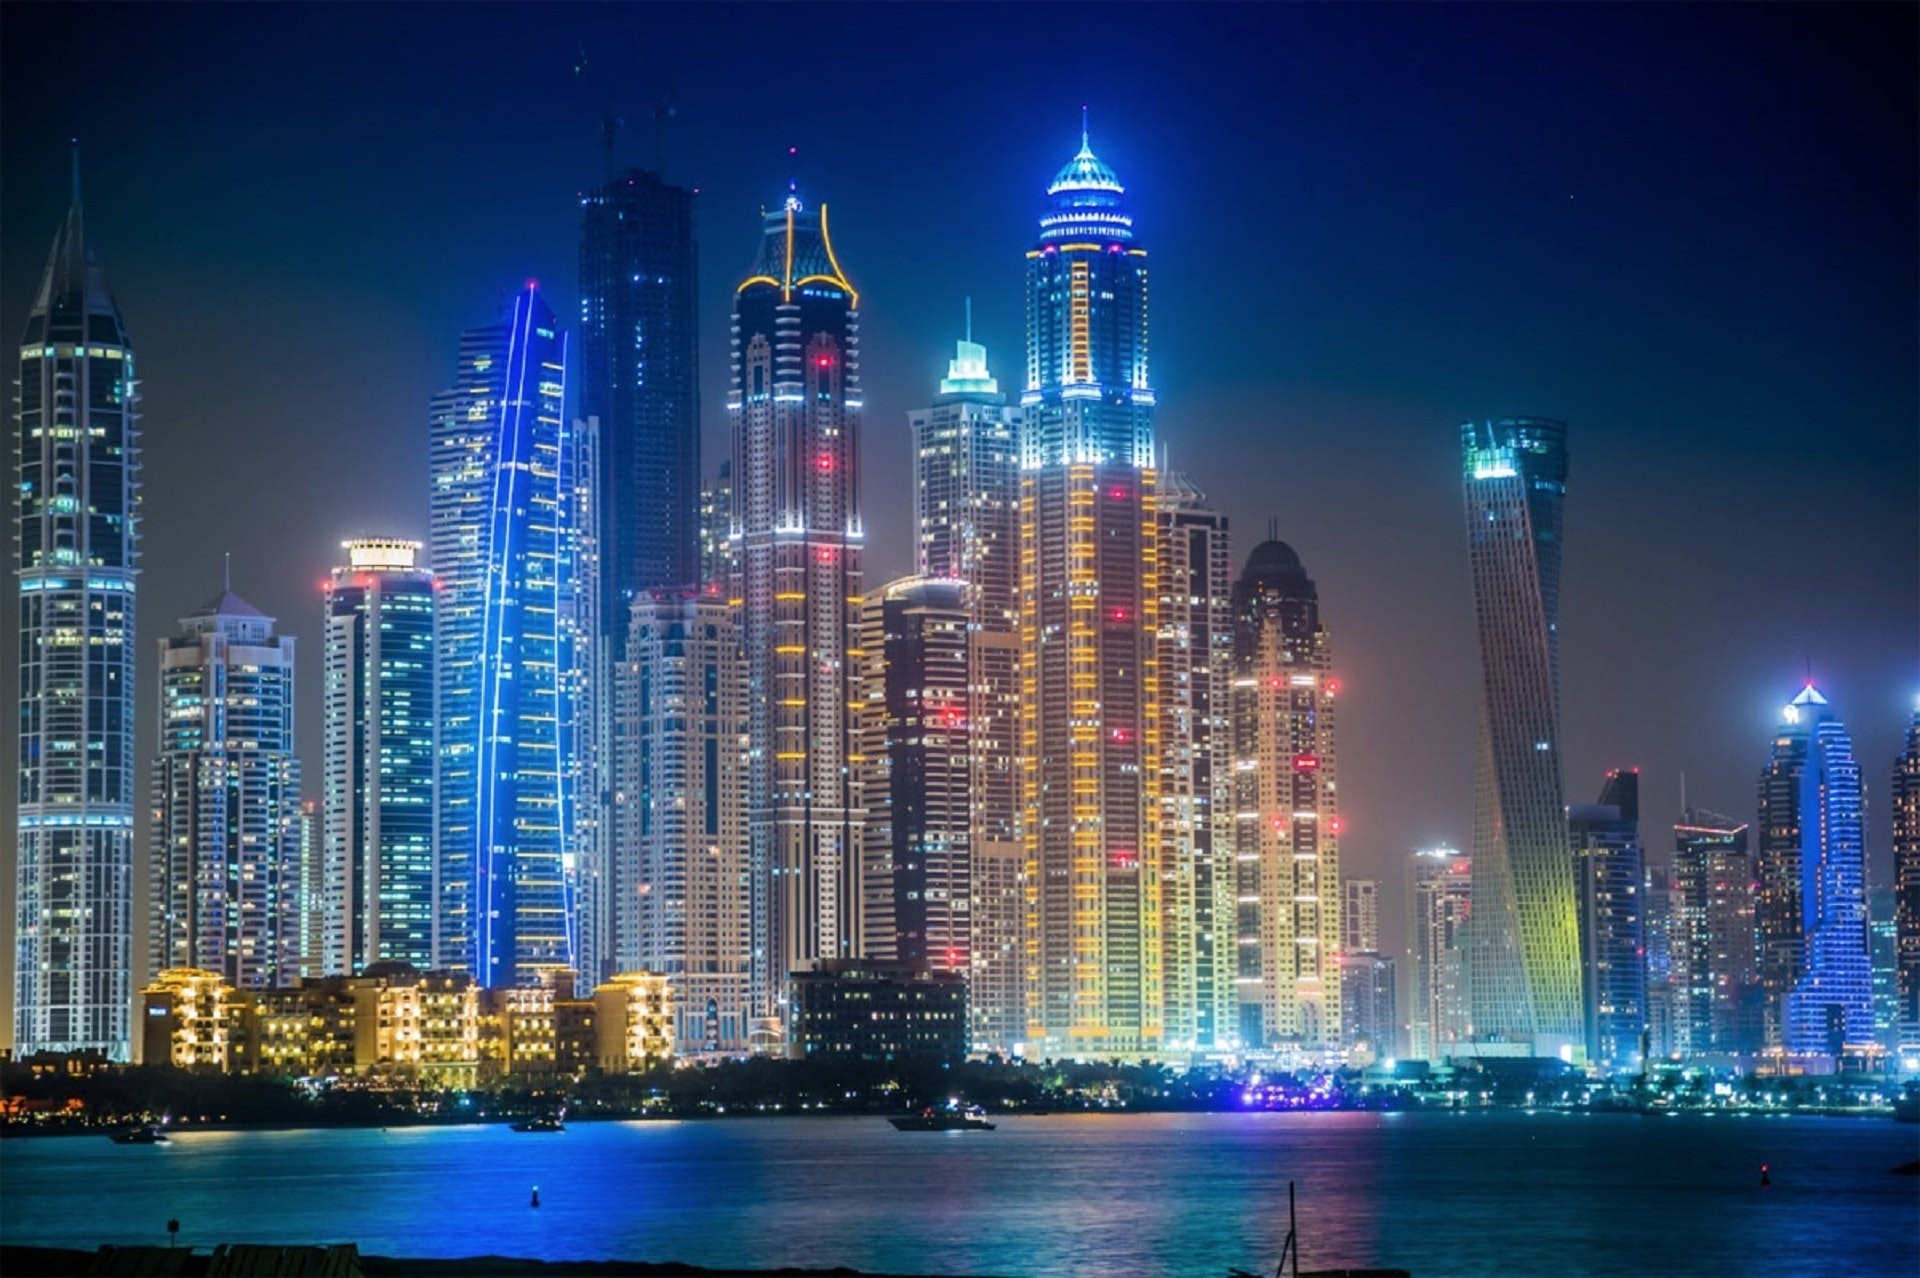 Profitable Business Opportunities in the city (Dubai) with the upcoming EXPO 2020!